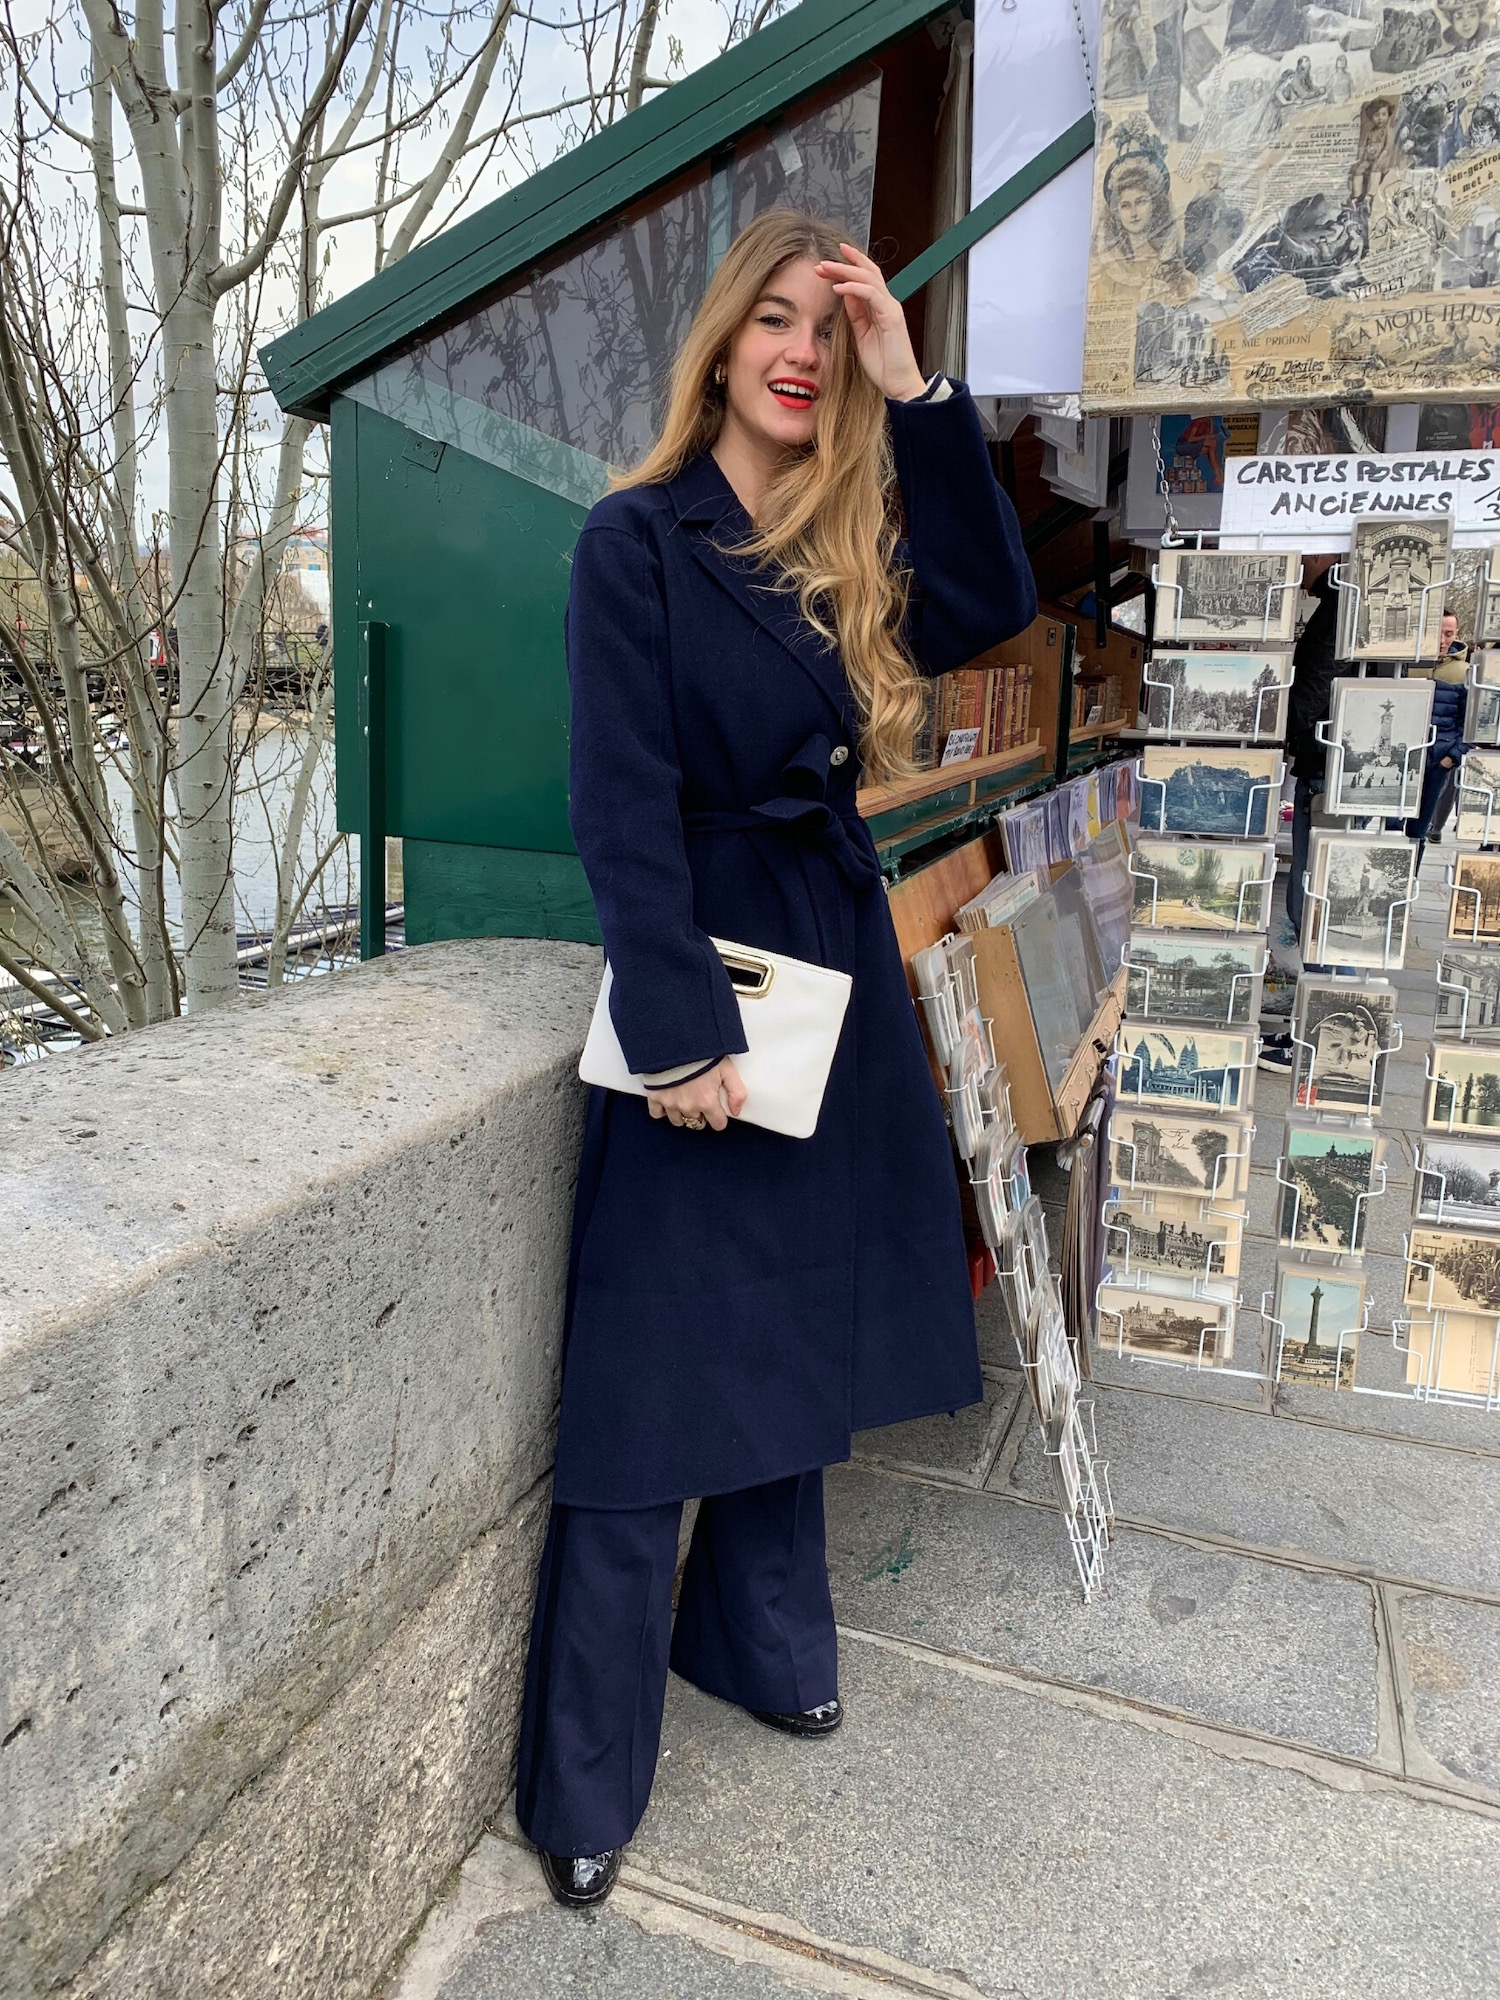 Constance Arnoult wearing a navy wool coat near the bouquinistes of Paris